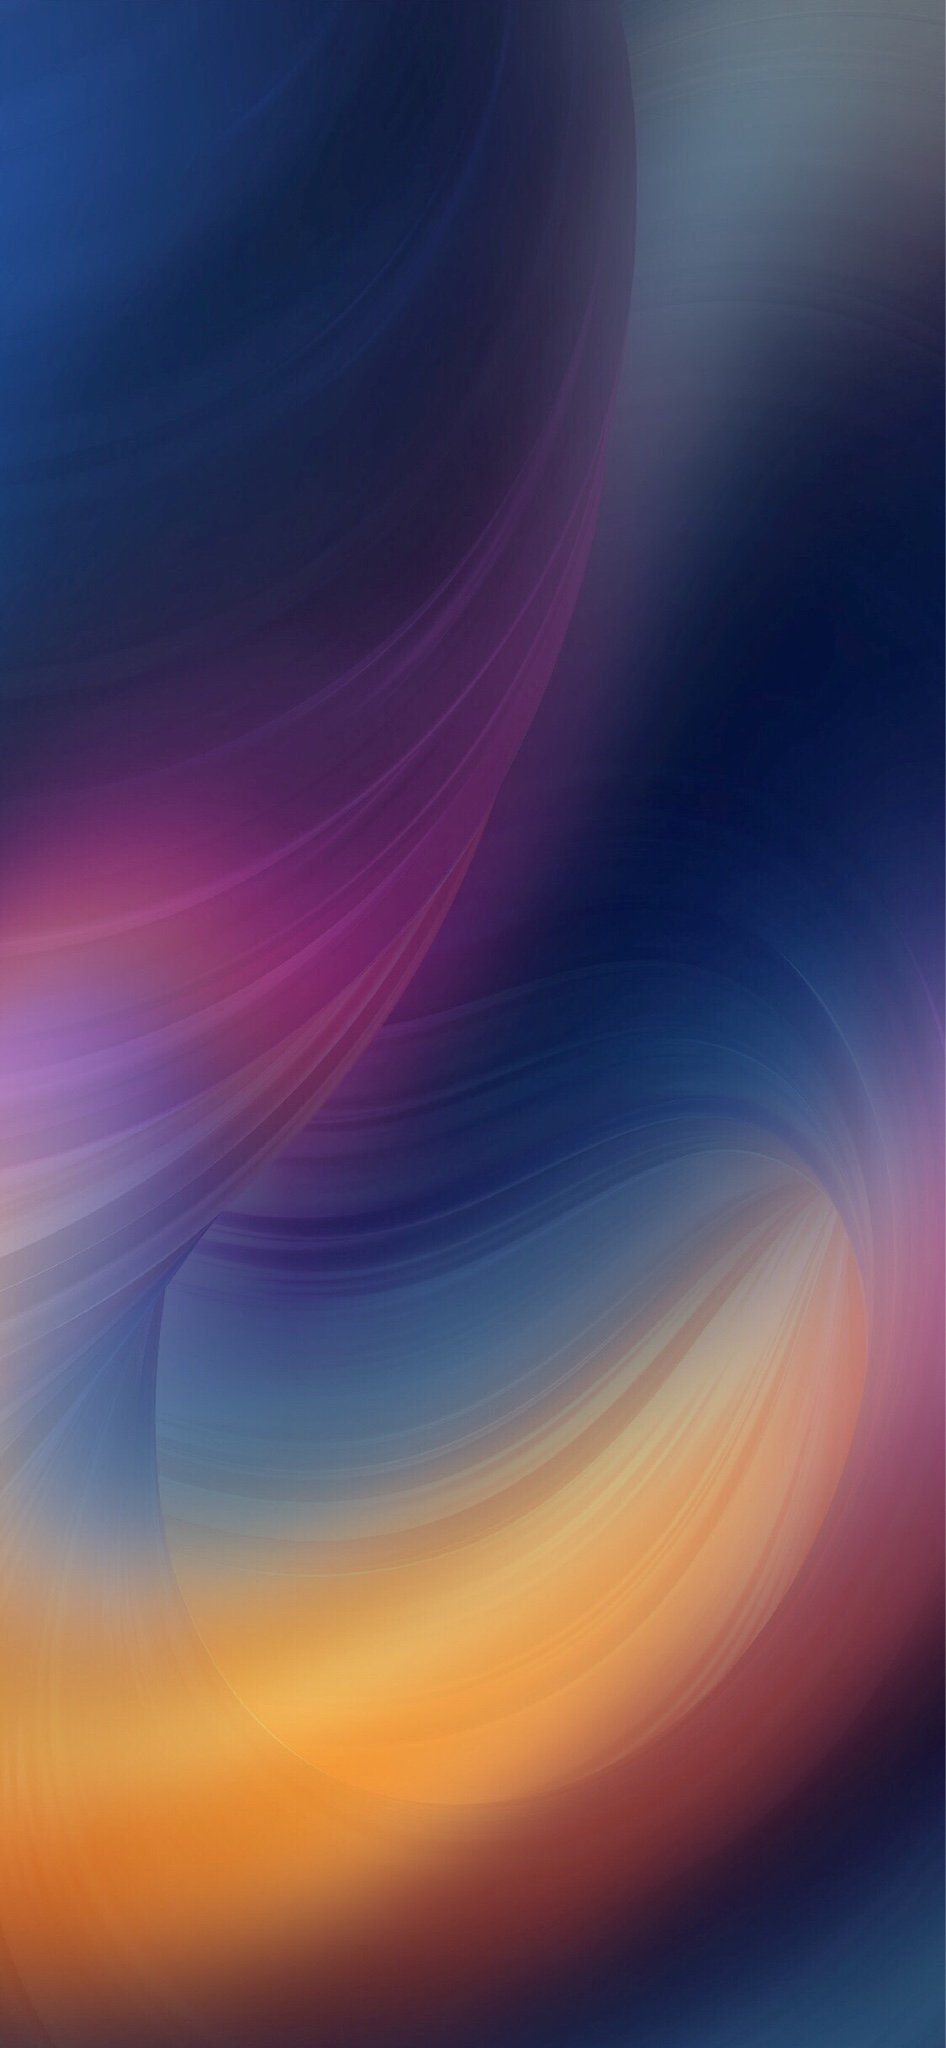 The Iphone X Xs Wallpaper Thread Iphone Ipad Ipod Forums